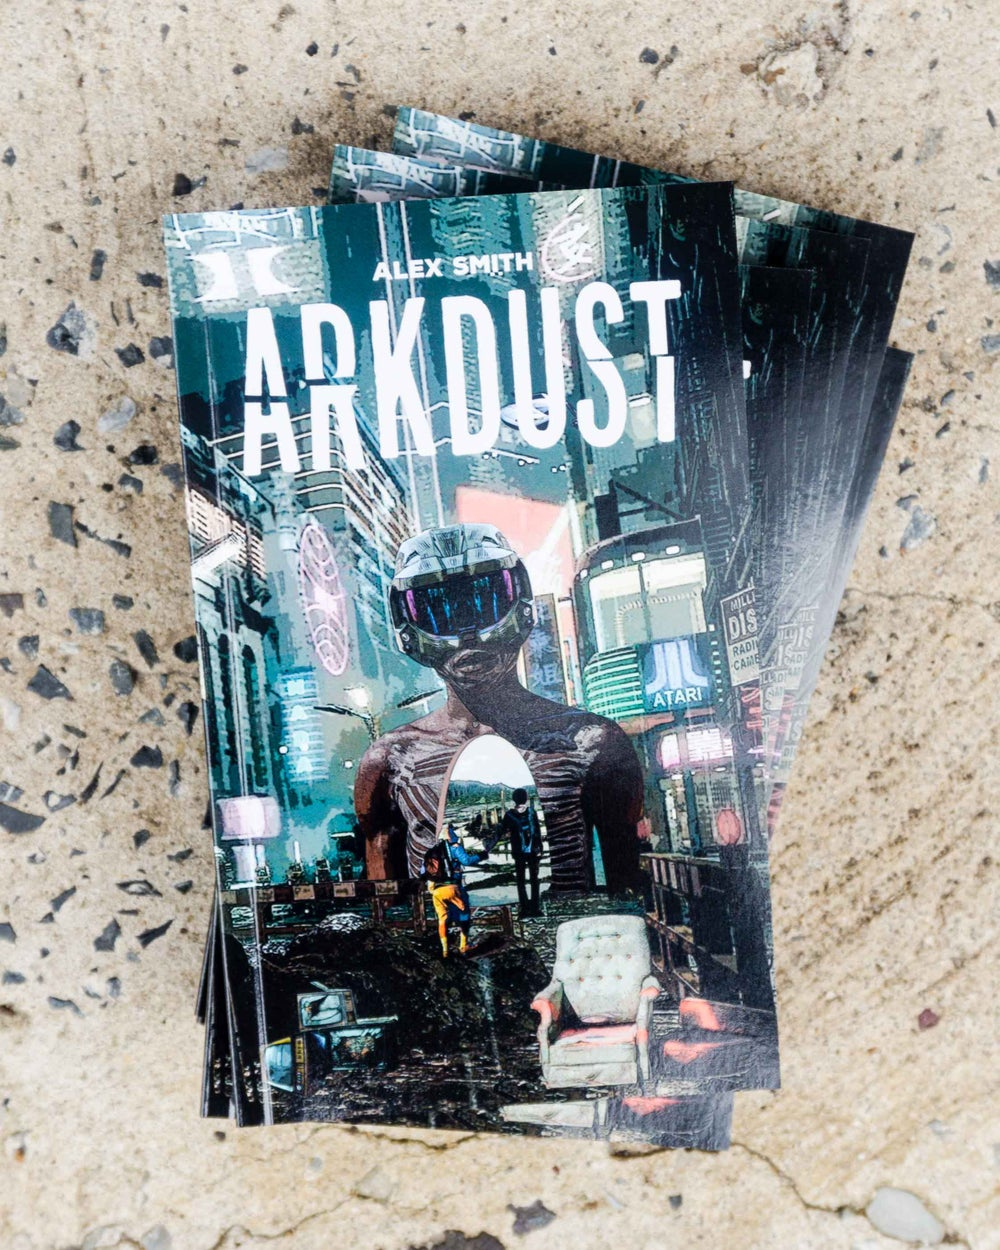 ARKDUST by Alex Smith | 2nd Printing